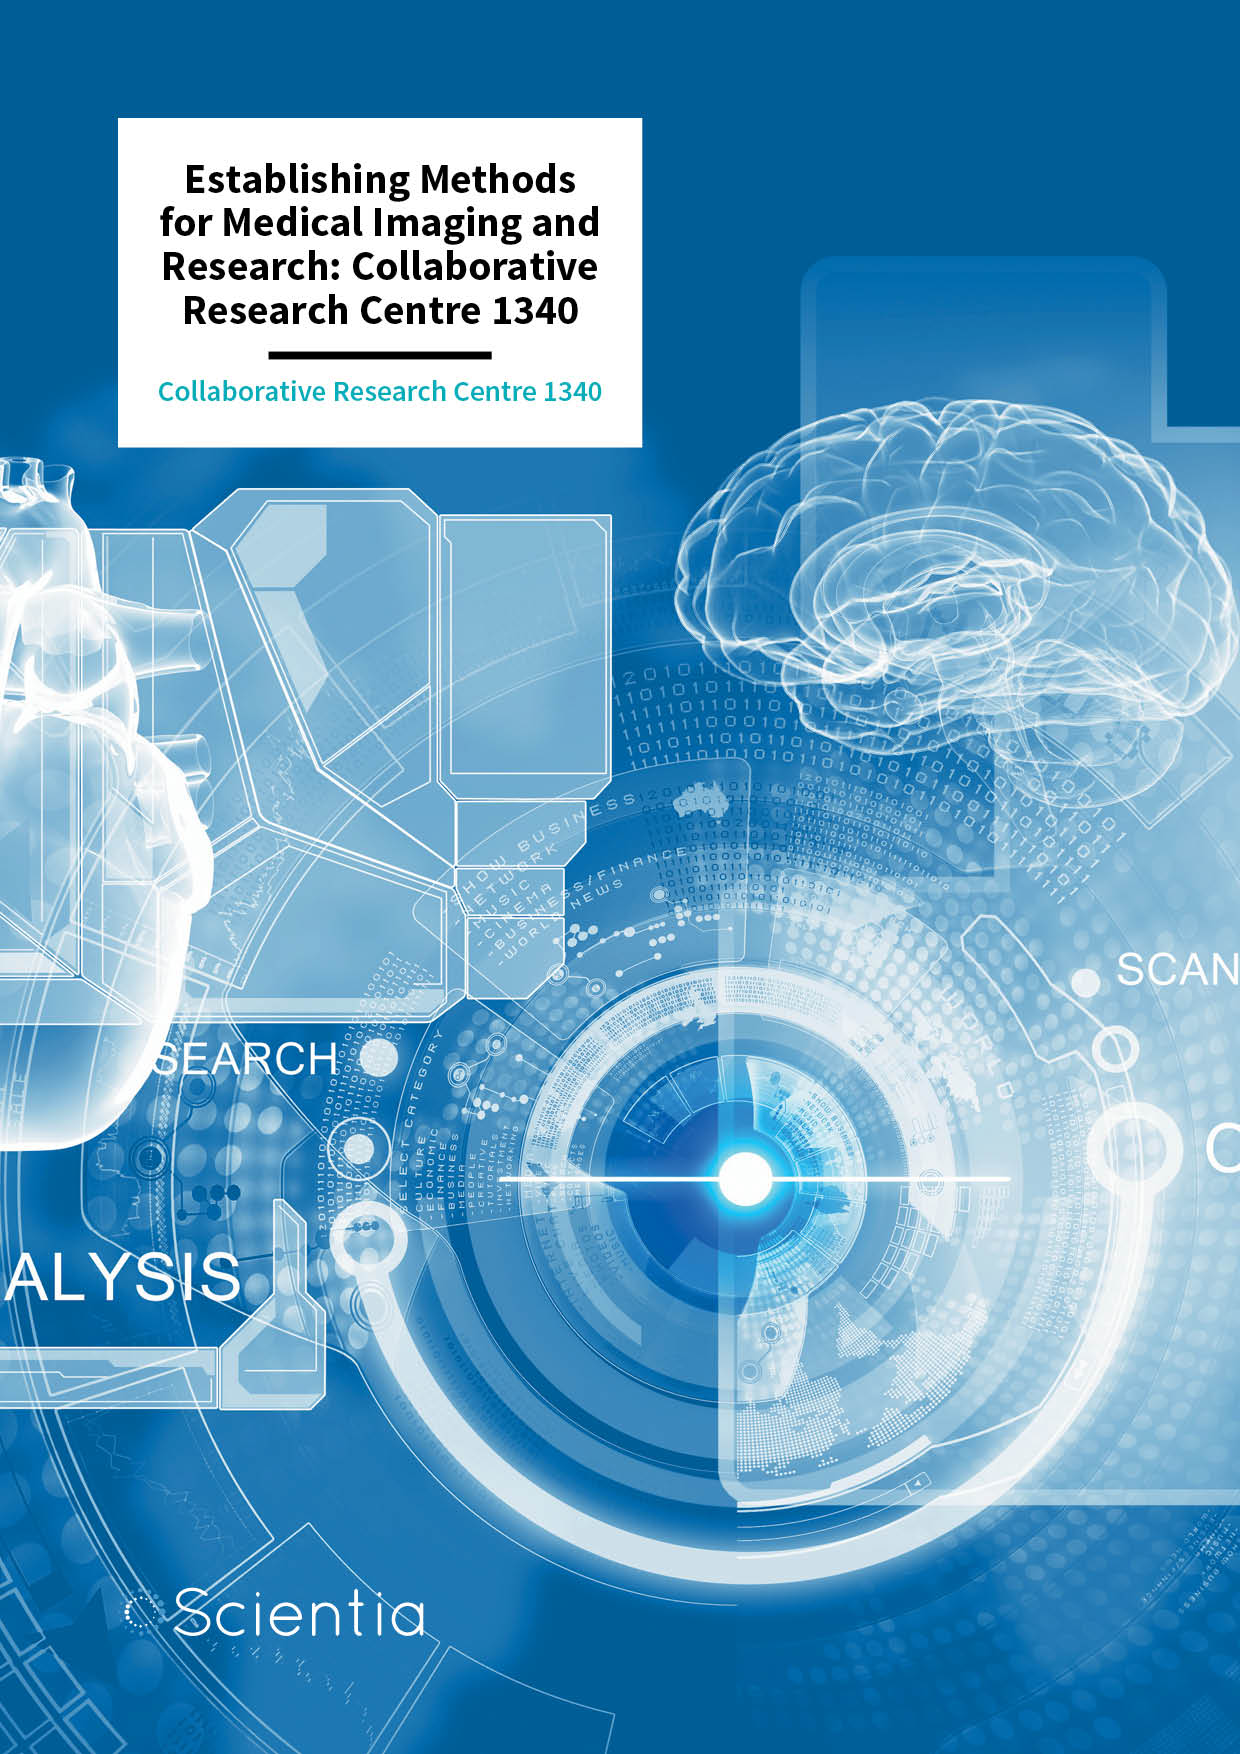 Establishing Methods for Medical Imaging and Research: Collaborative Research Centre 1340